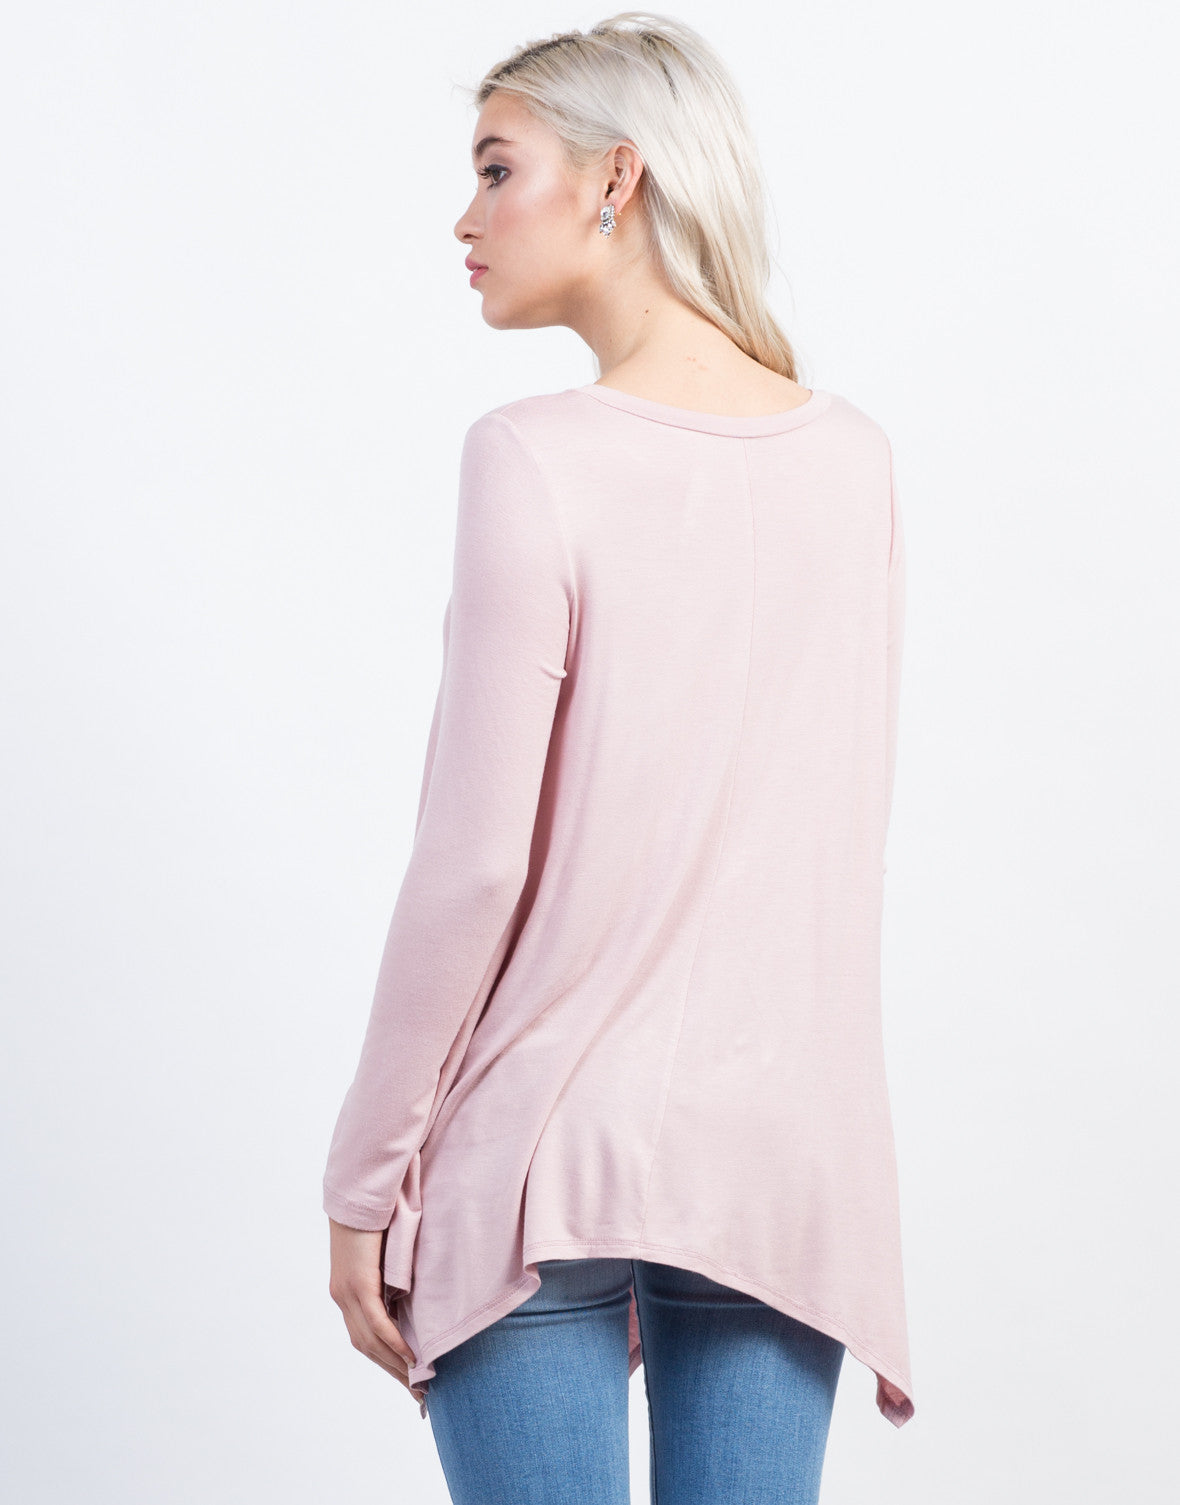 Back View of Long Sleeve Asymmetrical Tee